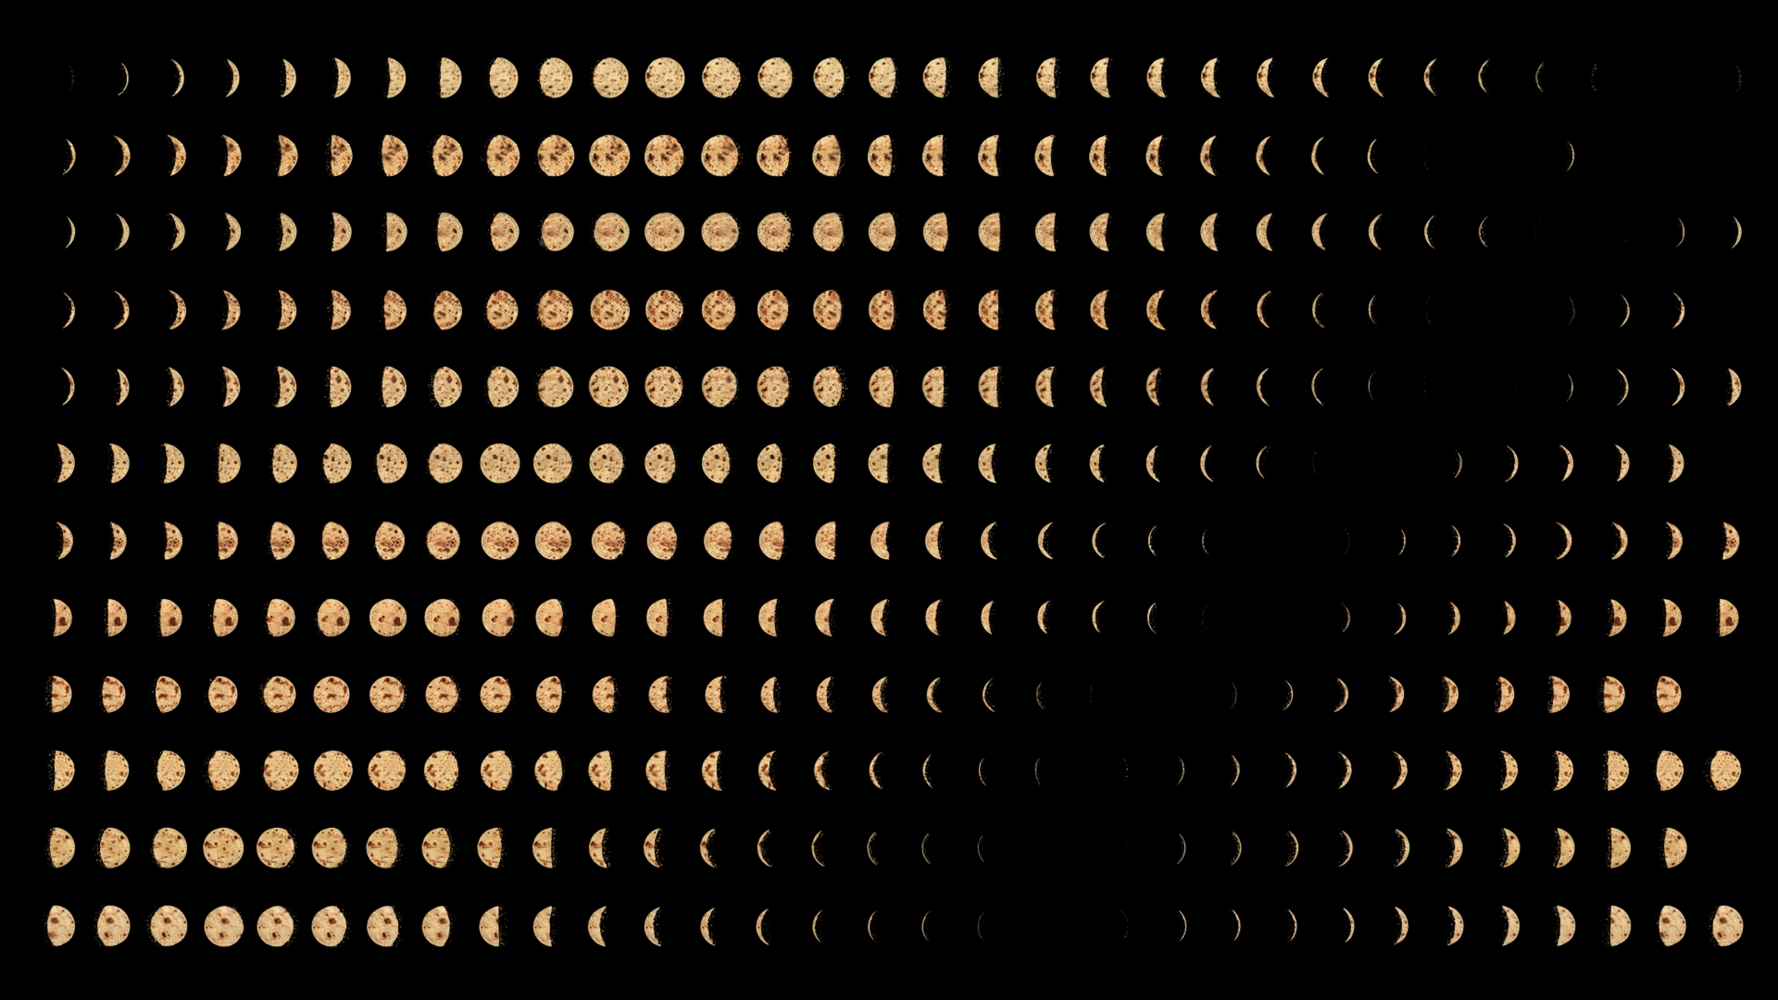 film still of rotis shaped like the phases of the moon against a black background